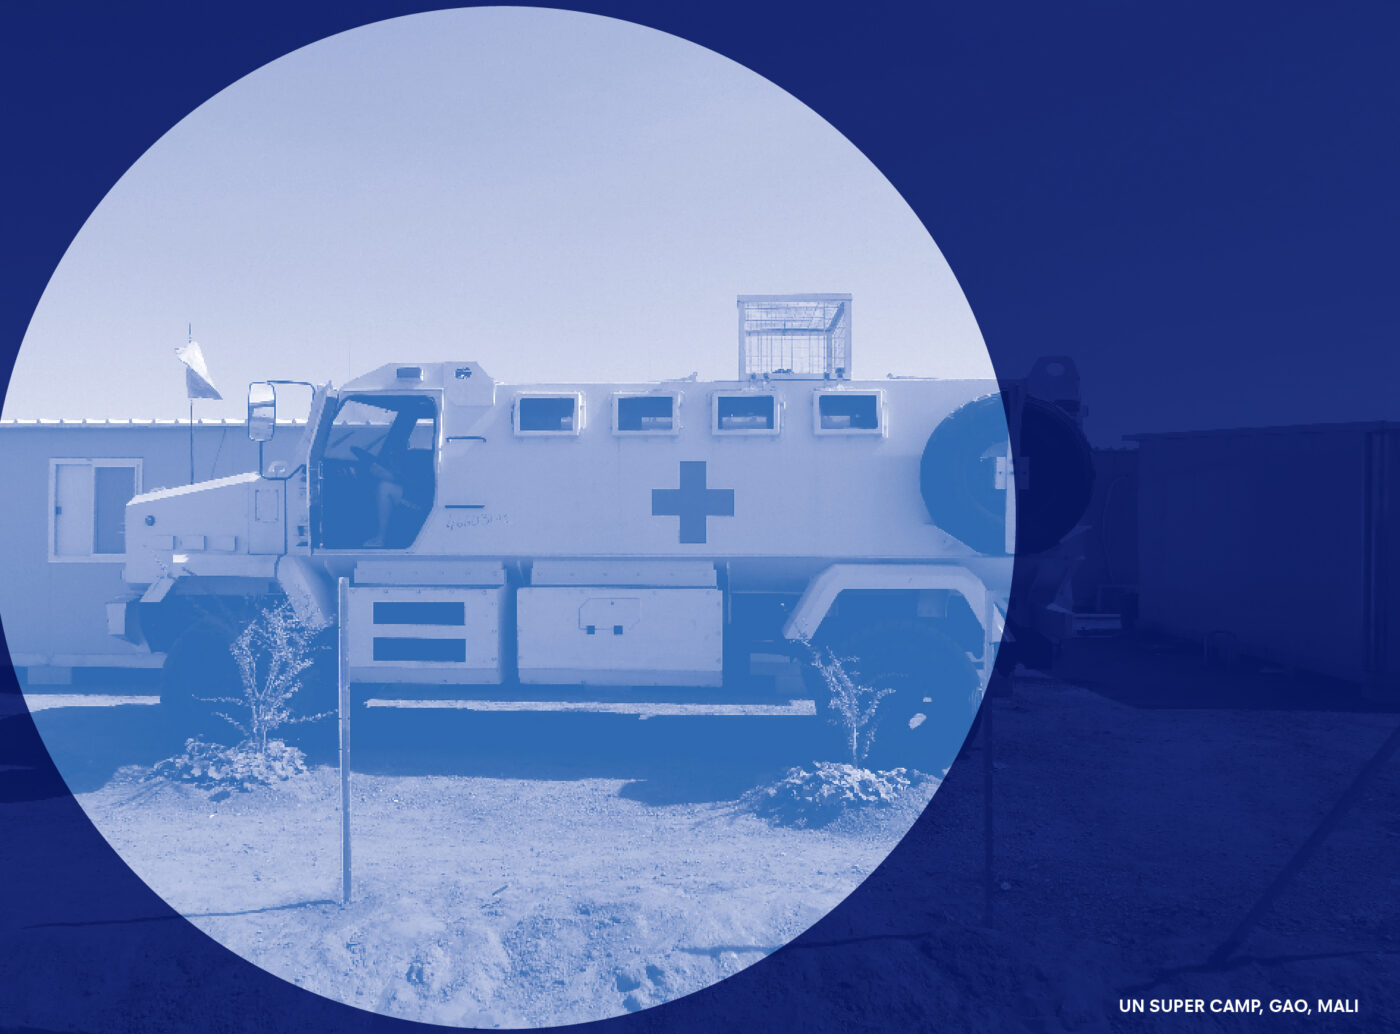 BLUE: The Architecture of UN Peacekeeping